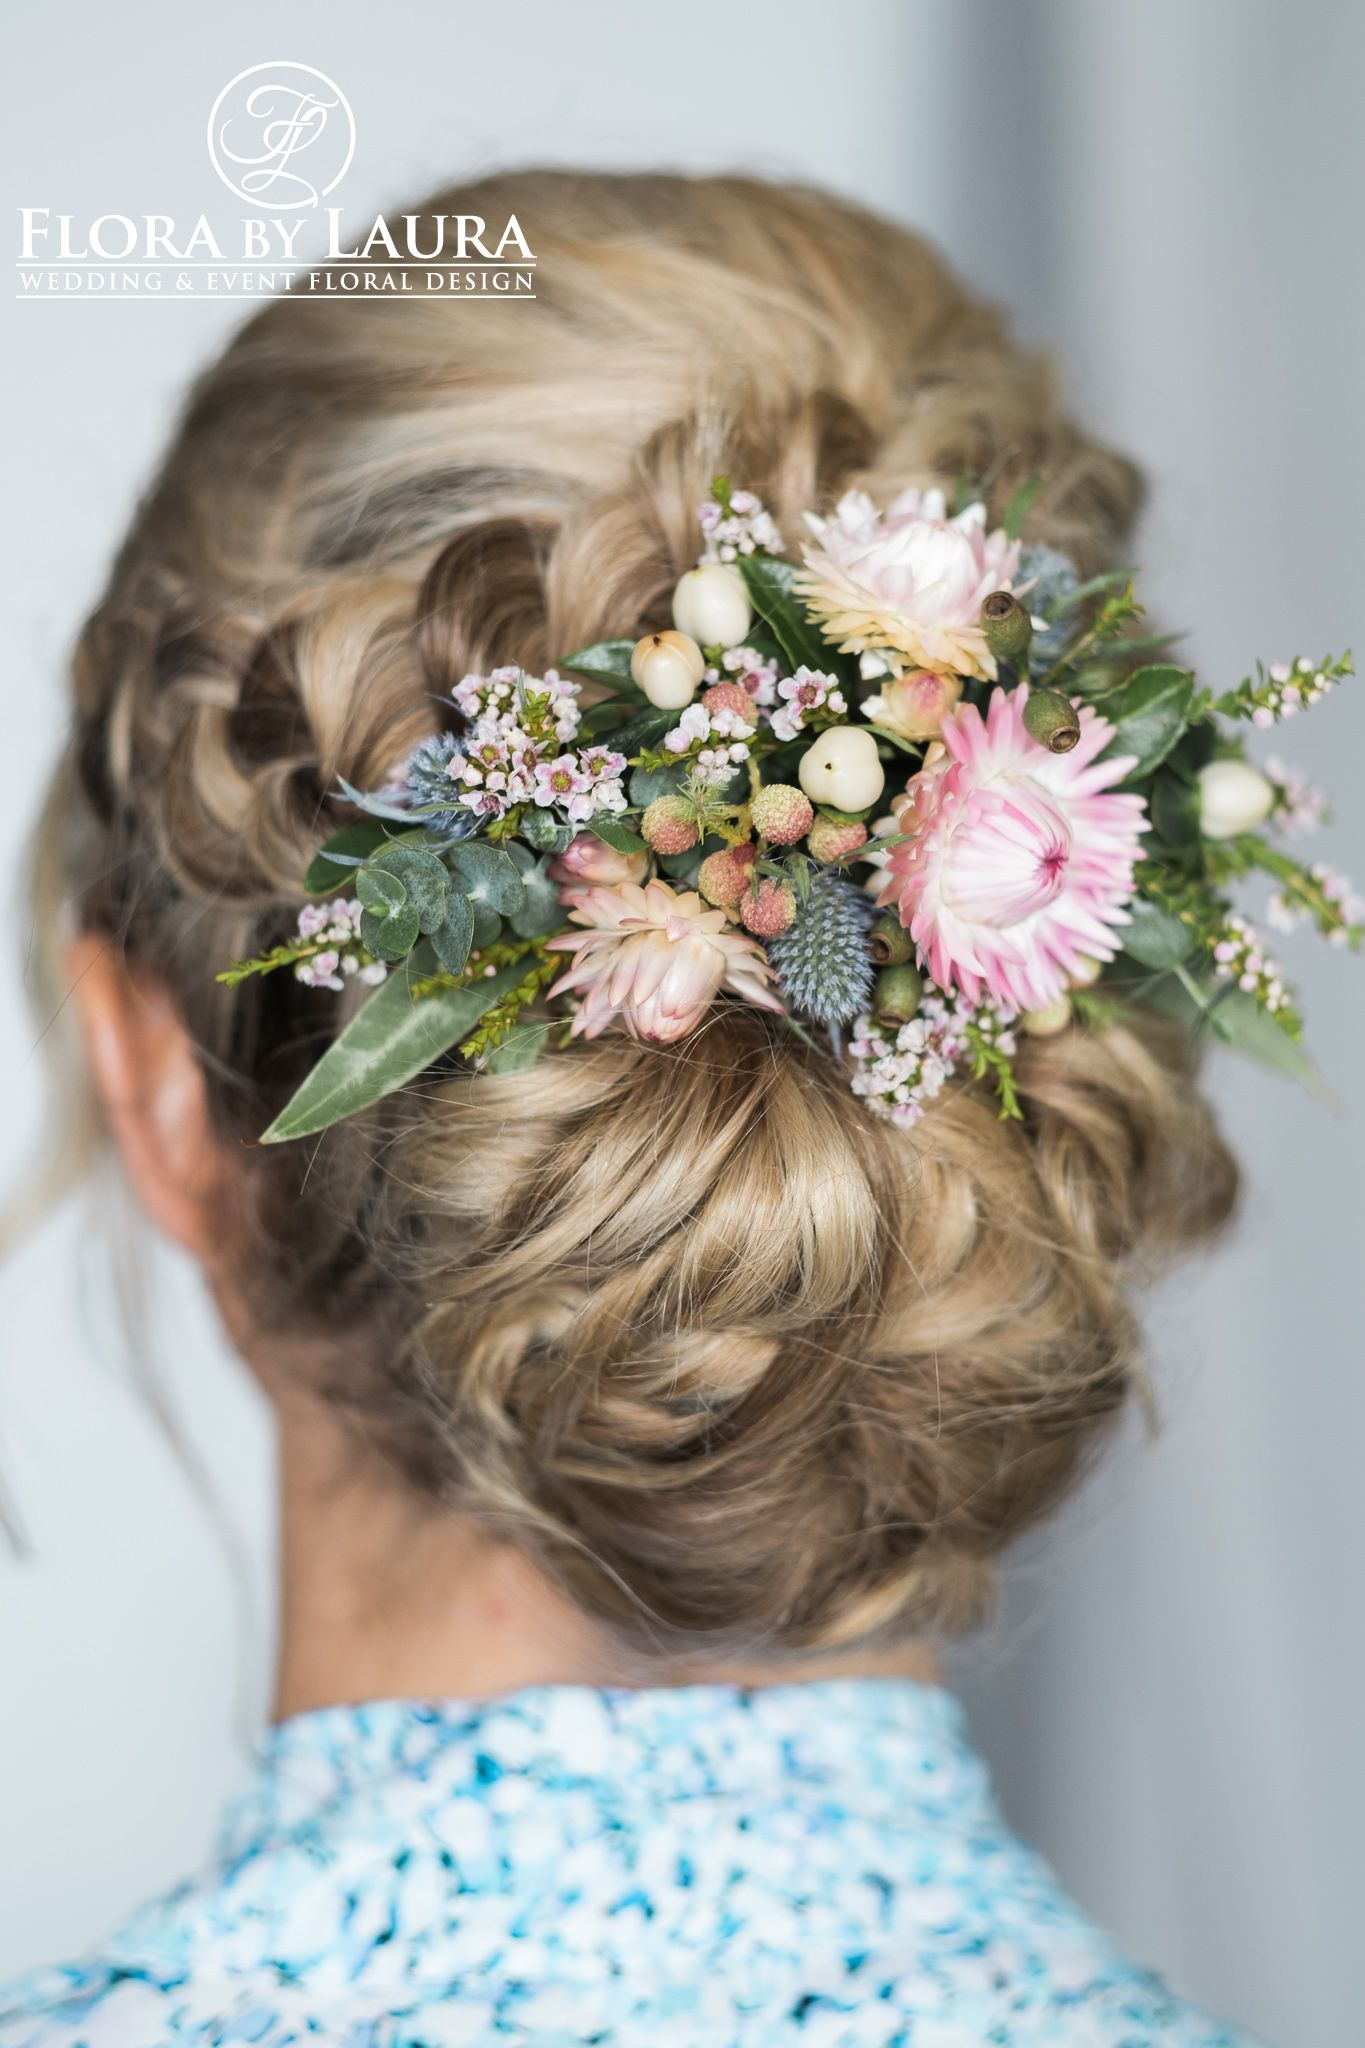 flora by laura hairpiece - accentuate your wedding hair